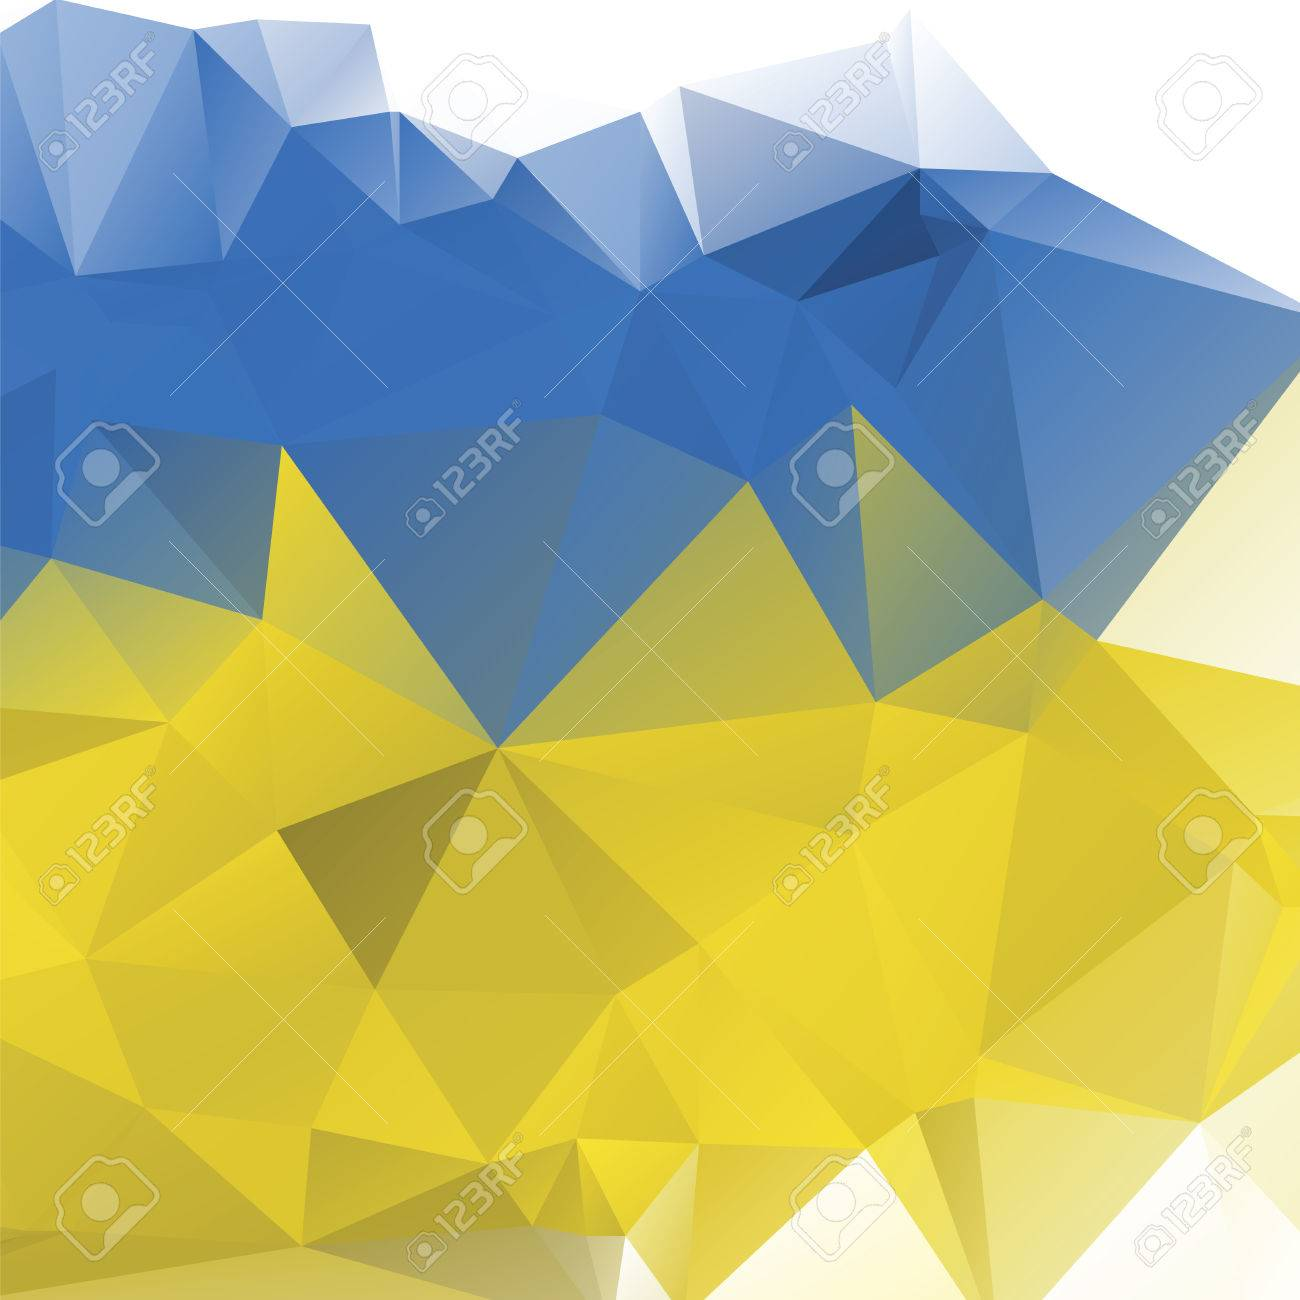 Website soft colors - Triangle Background Vector Polygon Art Soft Colored Abstract Illustration Web Mobile Interface Template